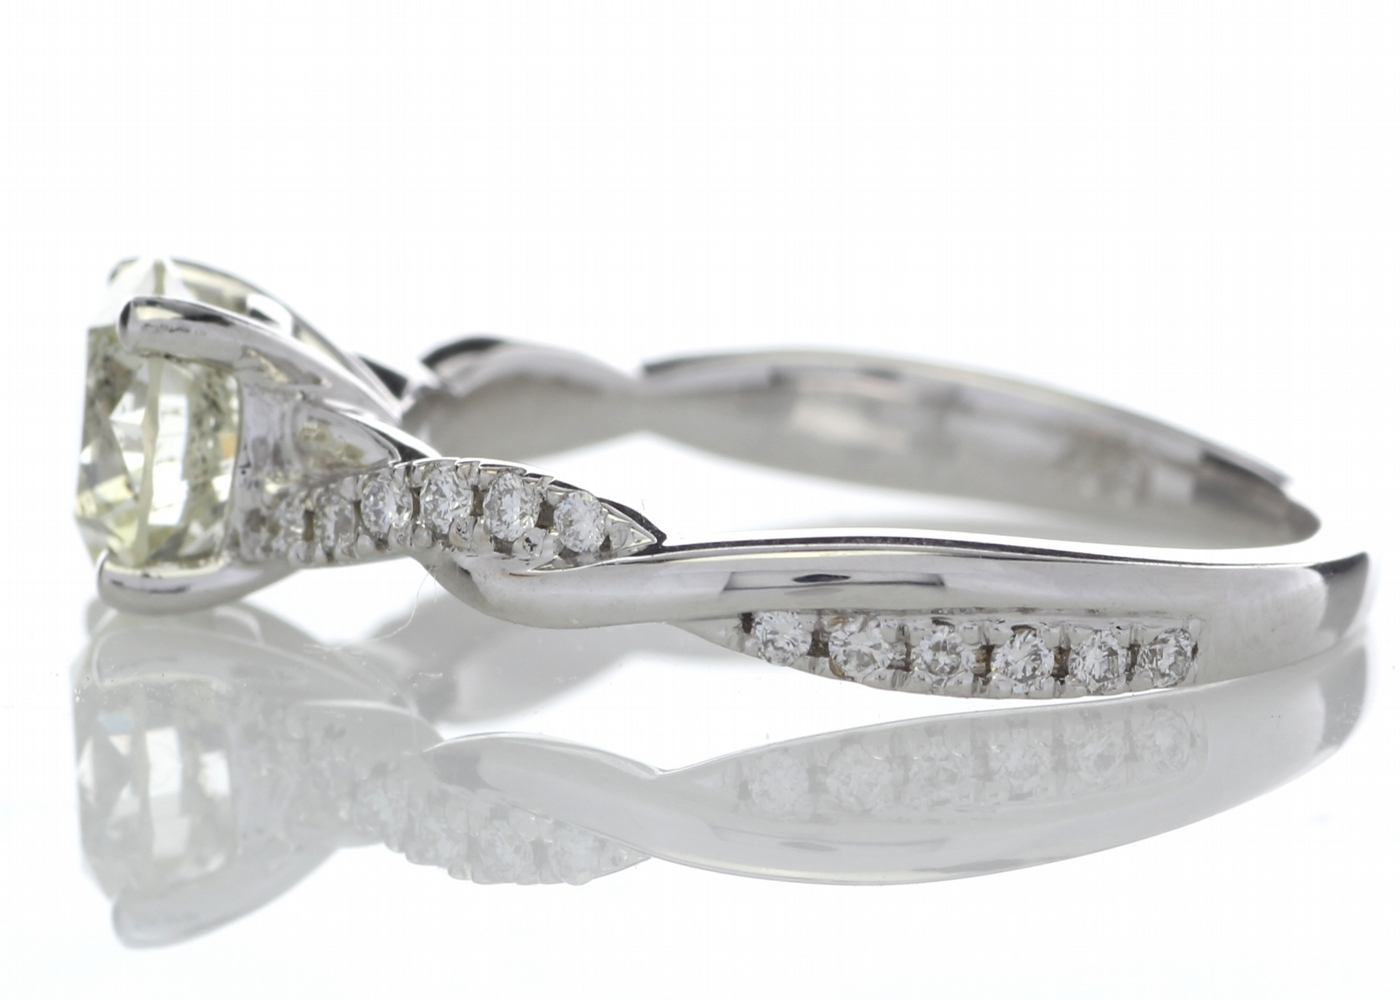 18k White Gold Diamond Ring With Waved Stone Set Shoulders 1.22 Carats - Image 3 of 5